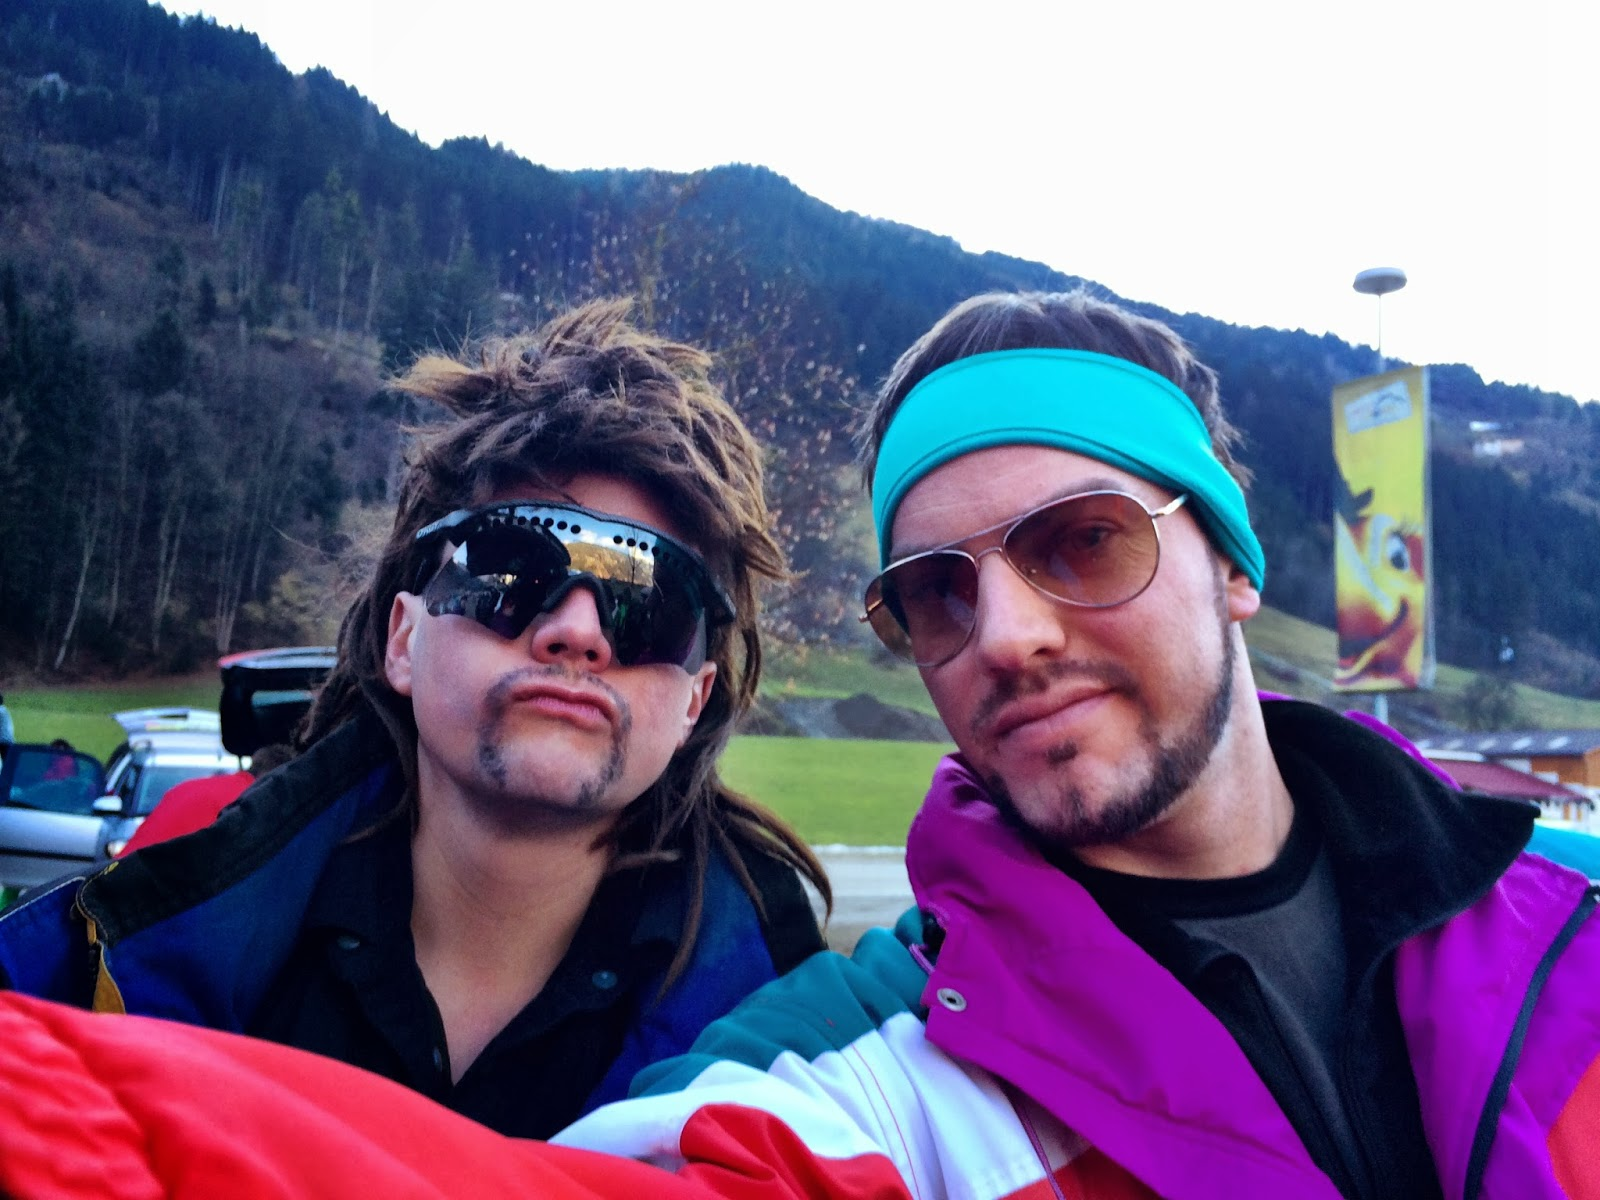 80's fancy dress - Mayrhofen